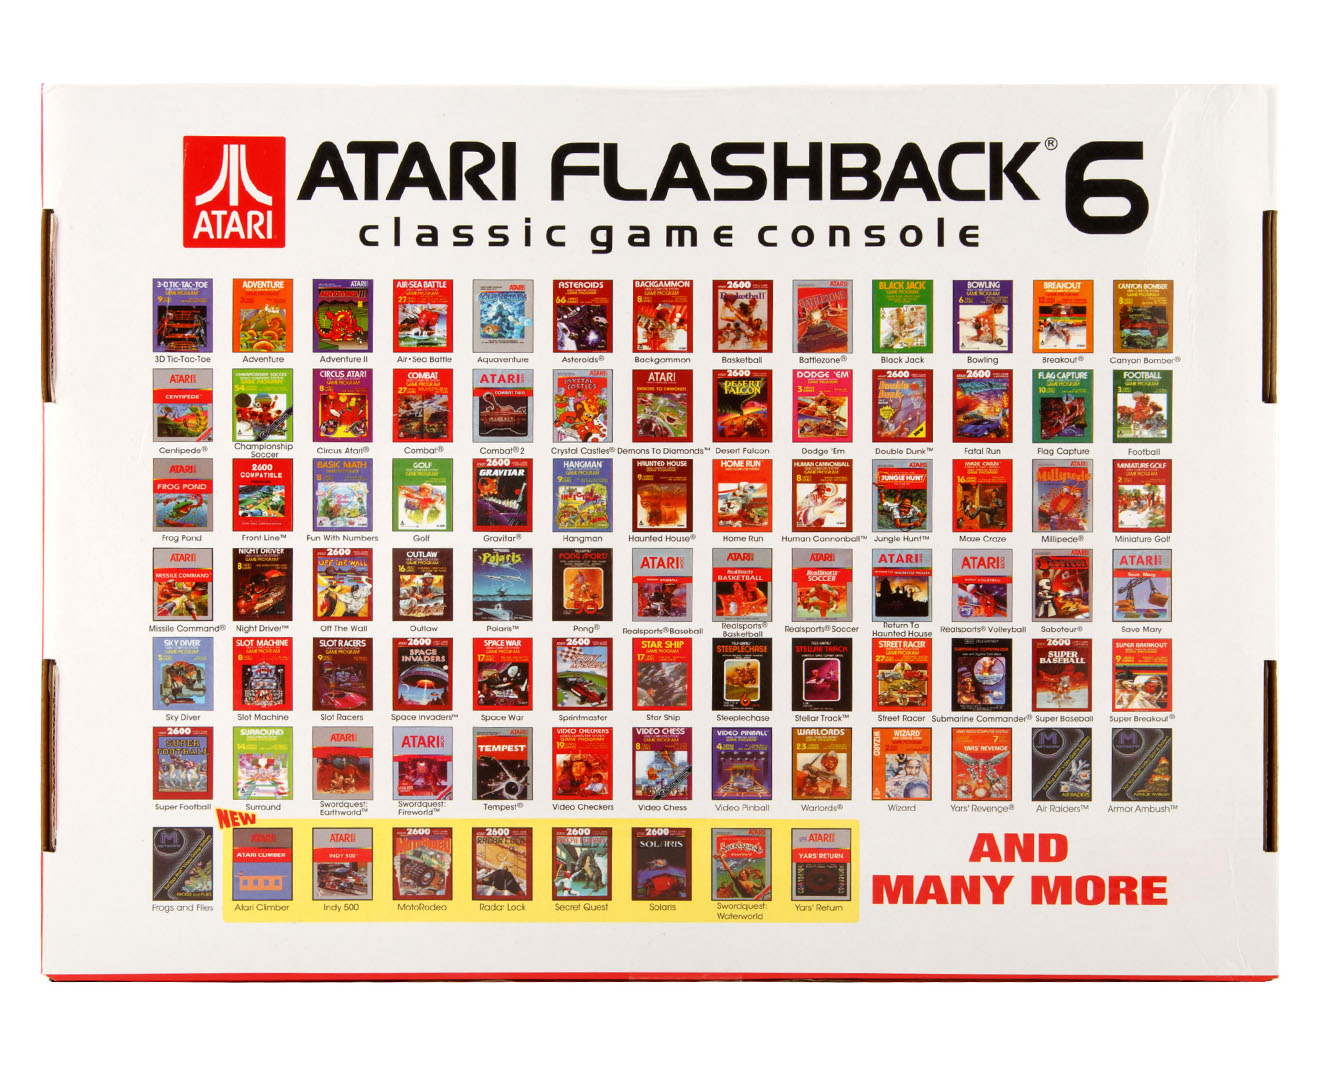 Atari flashback 6 classic game console 100 built in - Atari flashback classic game console game list ...